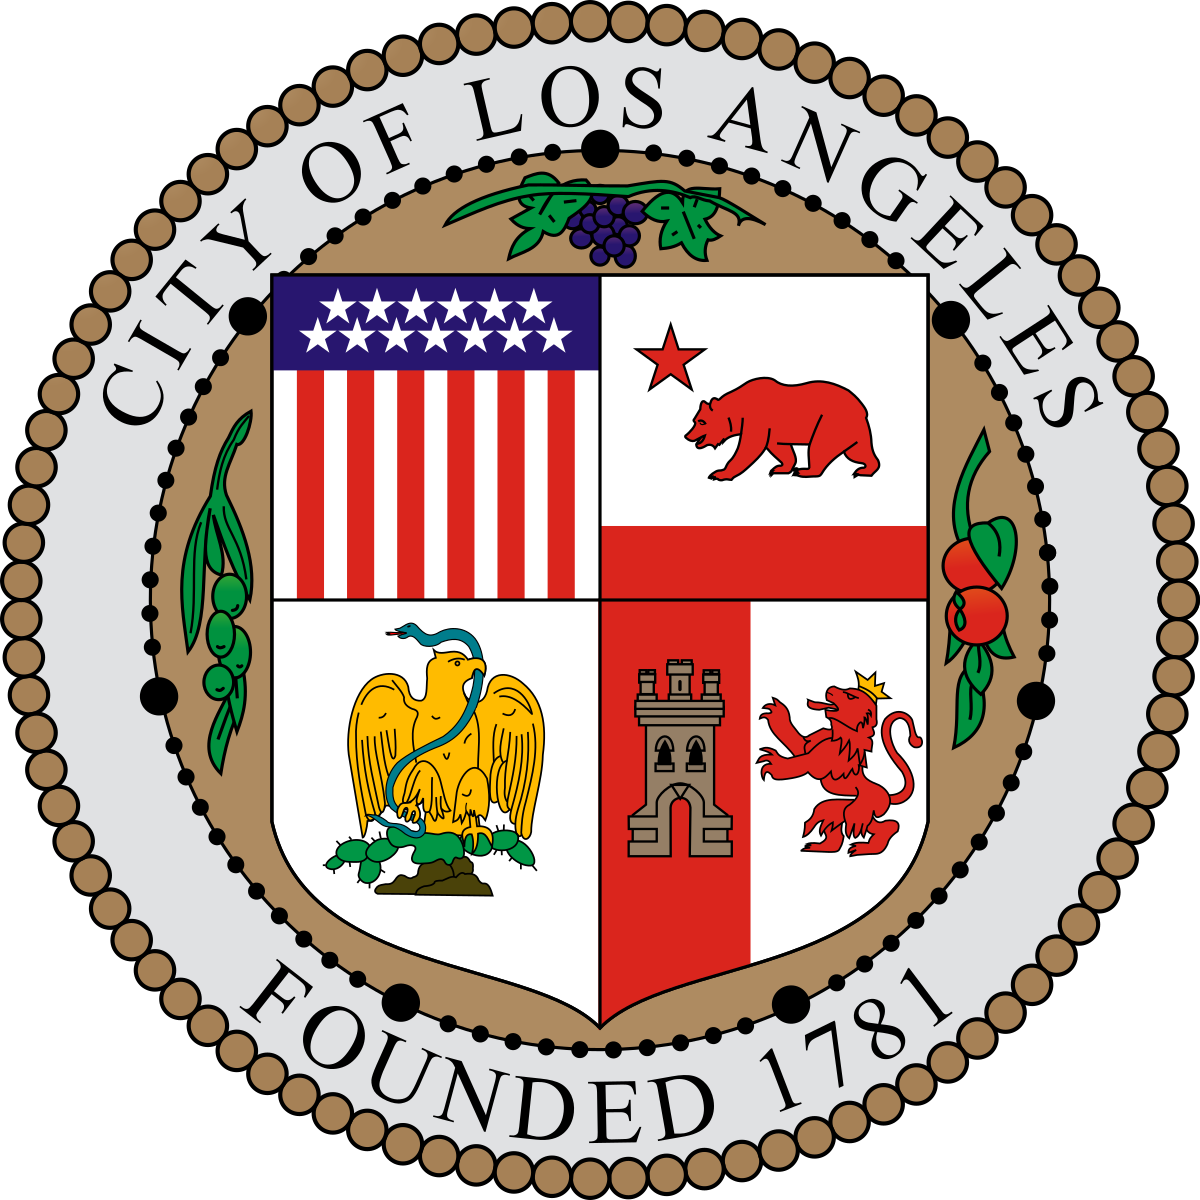 City of los angeles seal png. The wikipedia